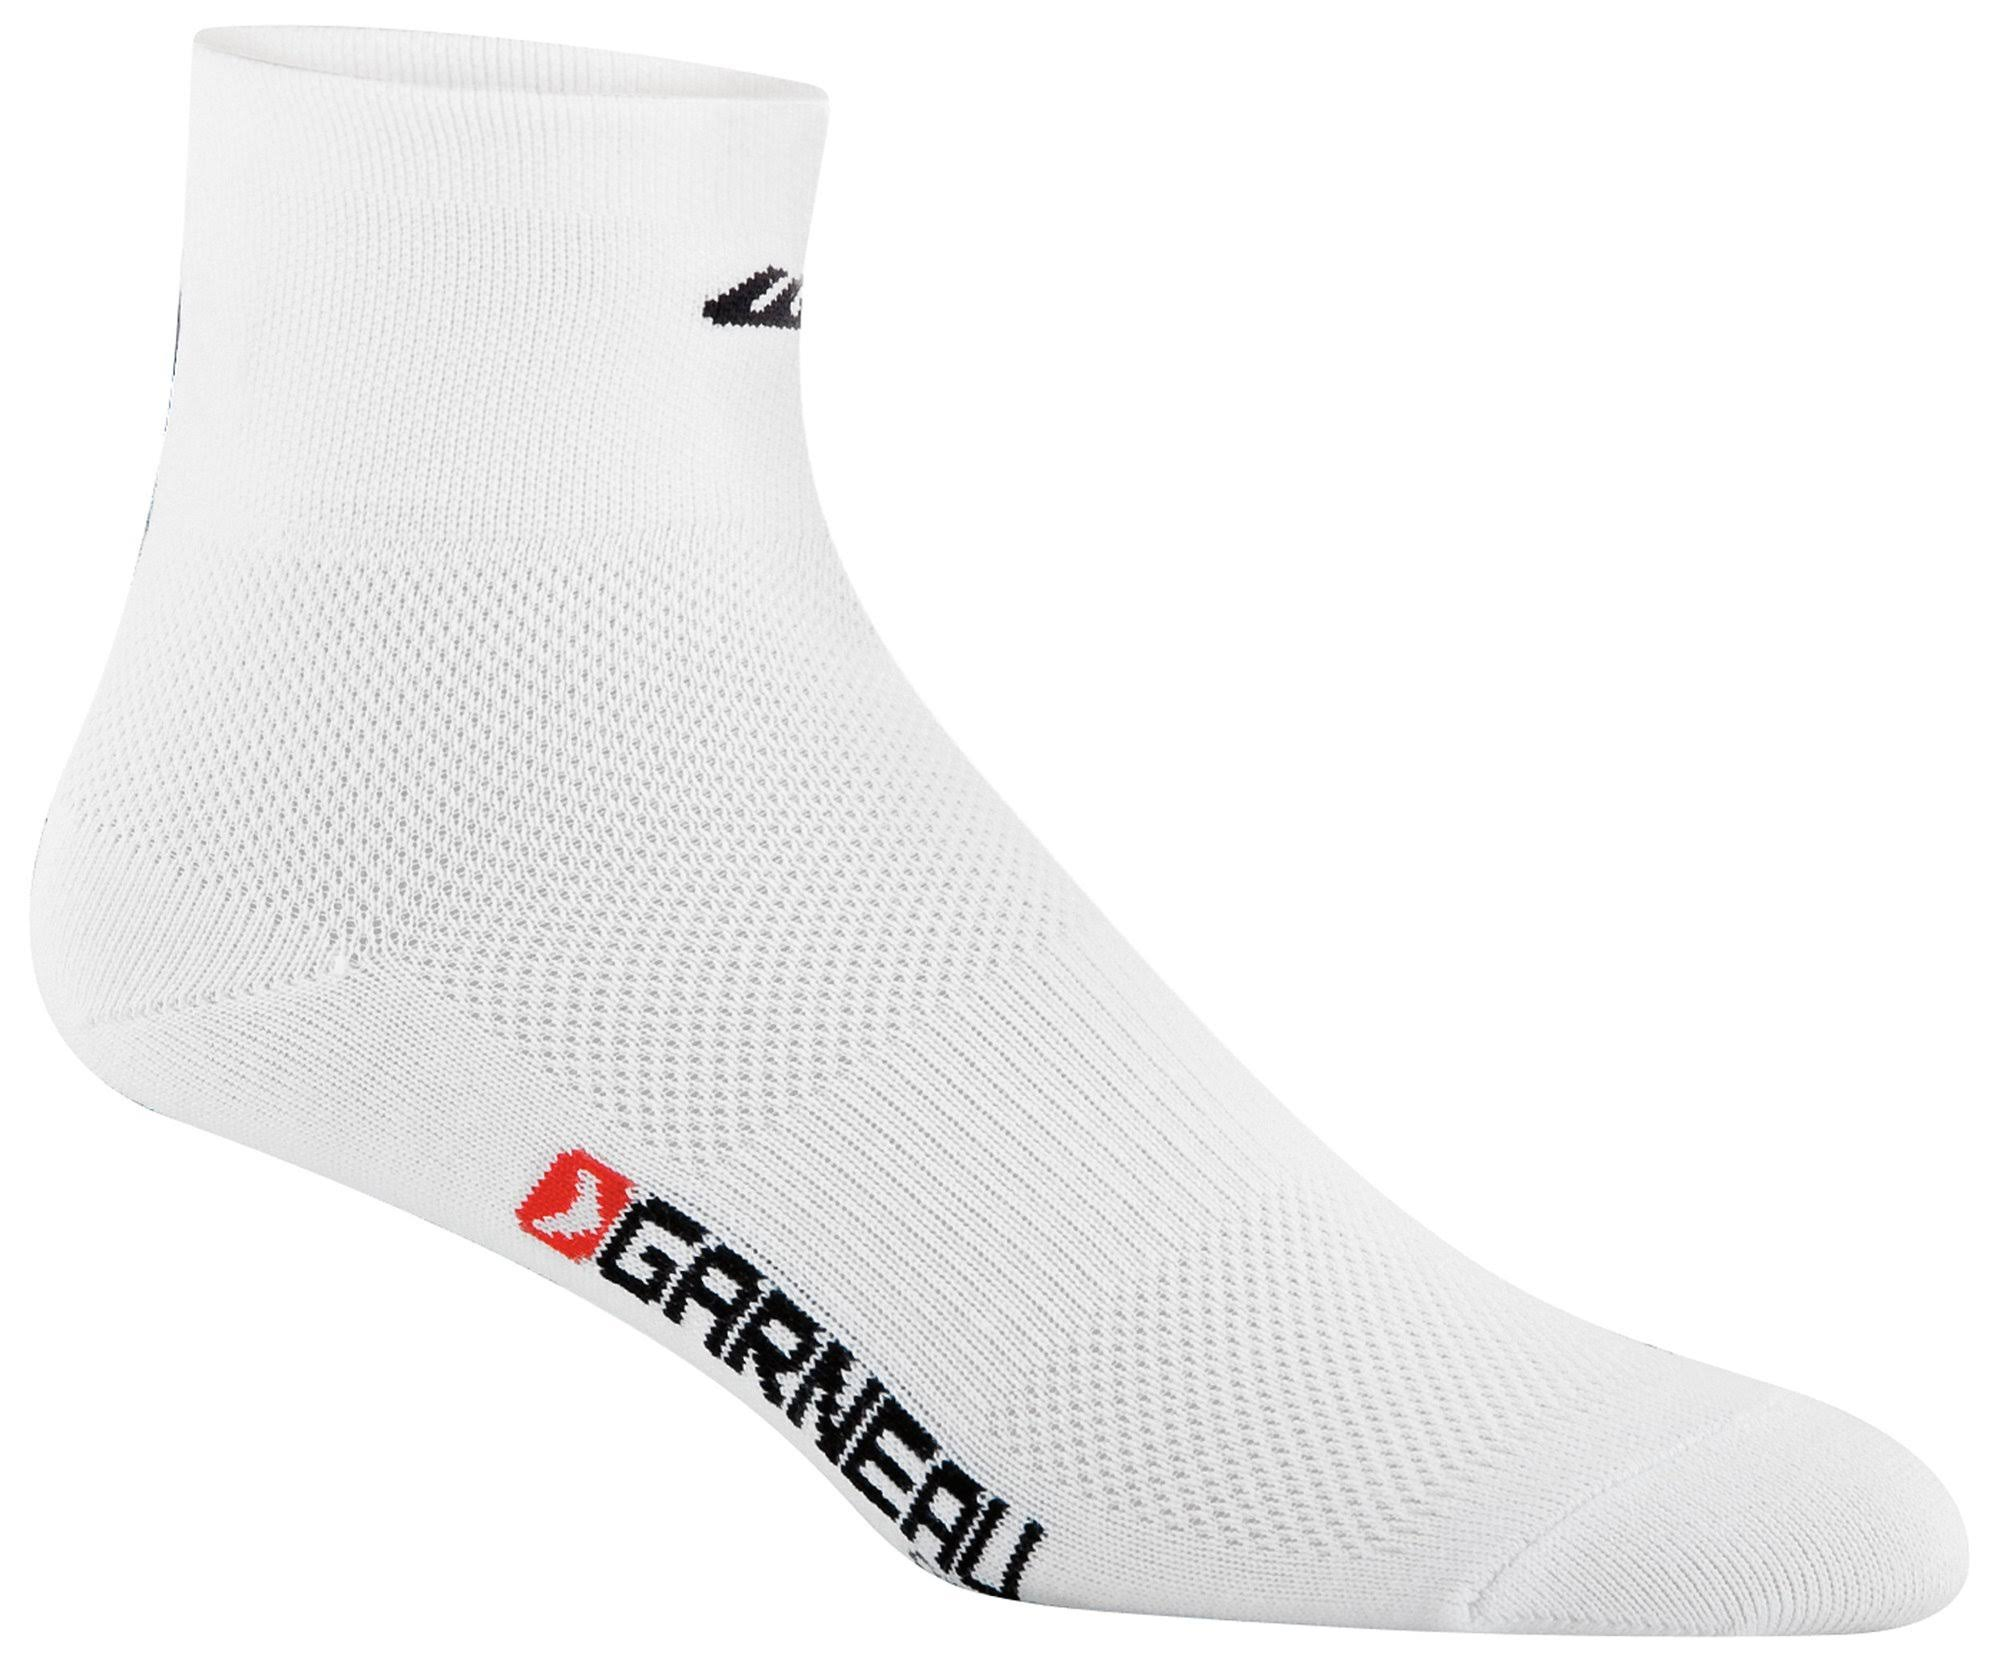 Louis Garneau Mid Versis Socks - 3pk, White, Large